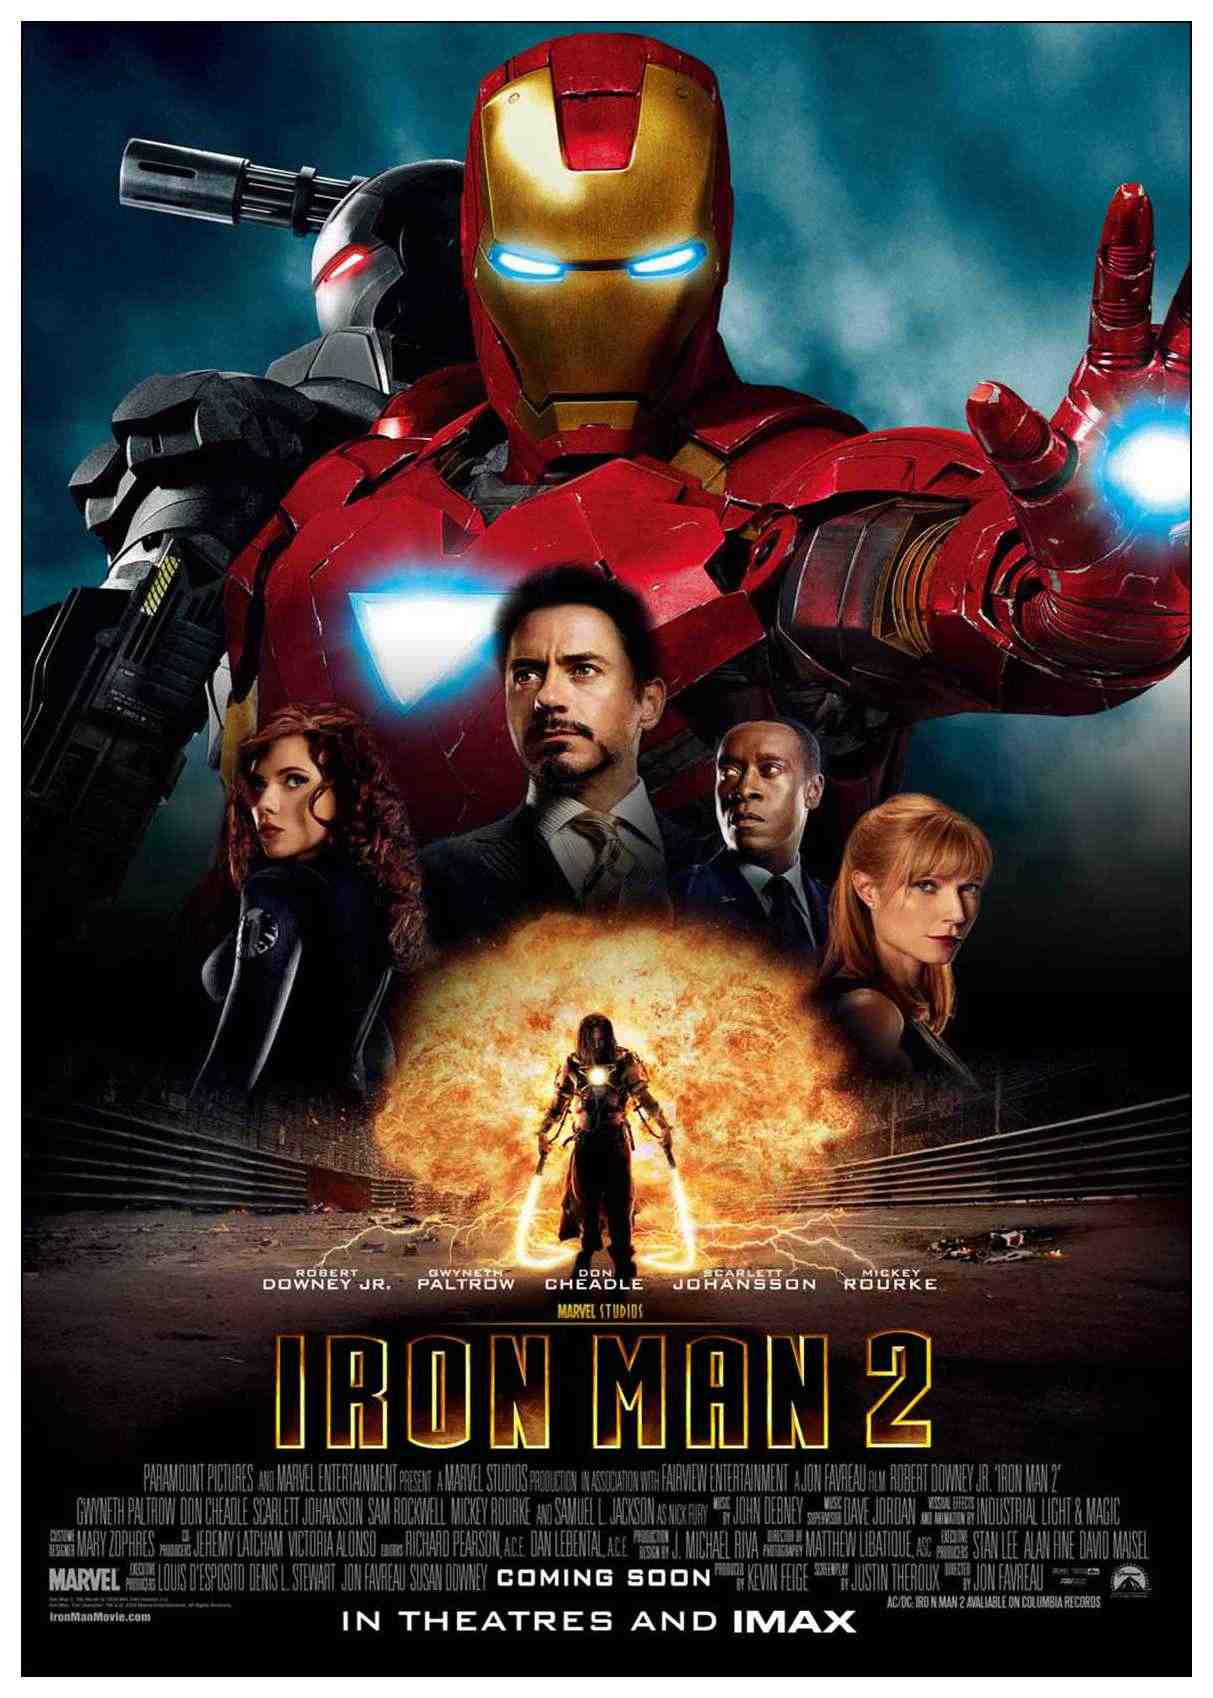 #21 Iron Man 2 - I hated the bird. I hated the plot. Seriously, dying of ARC reactor poisoning is a 3rd movie plot, not a 2nd! RDJ is charismatic, so, that was fun at least. - .